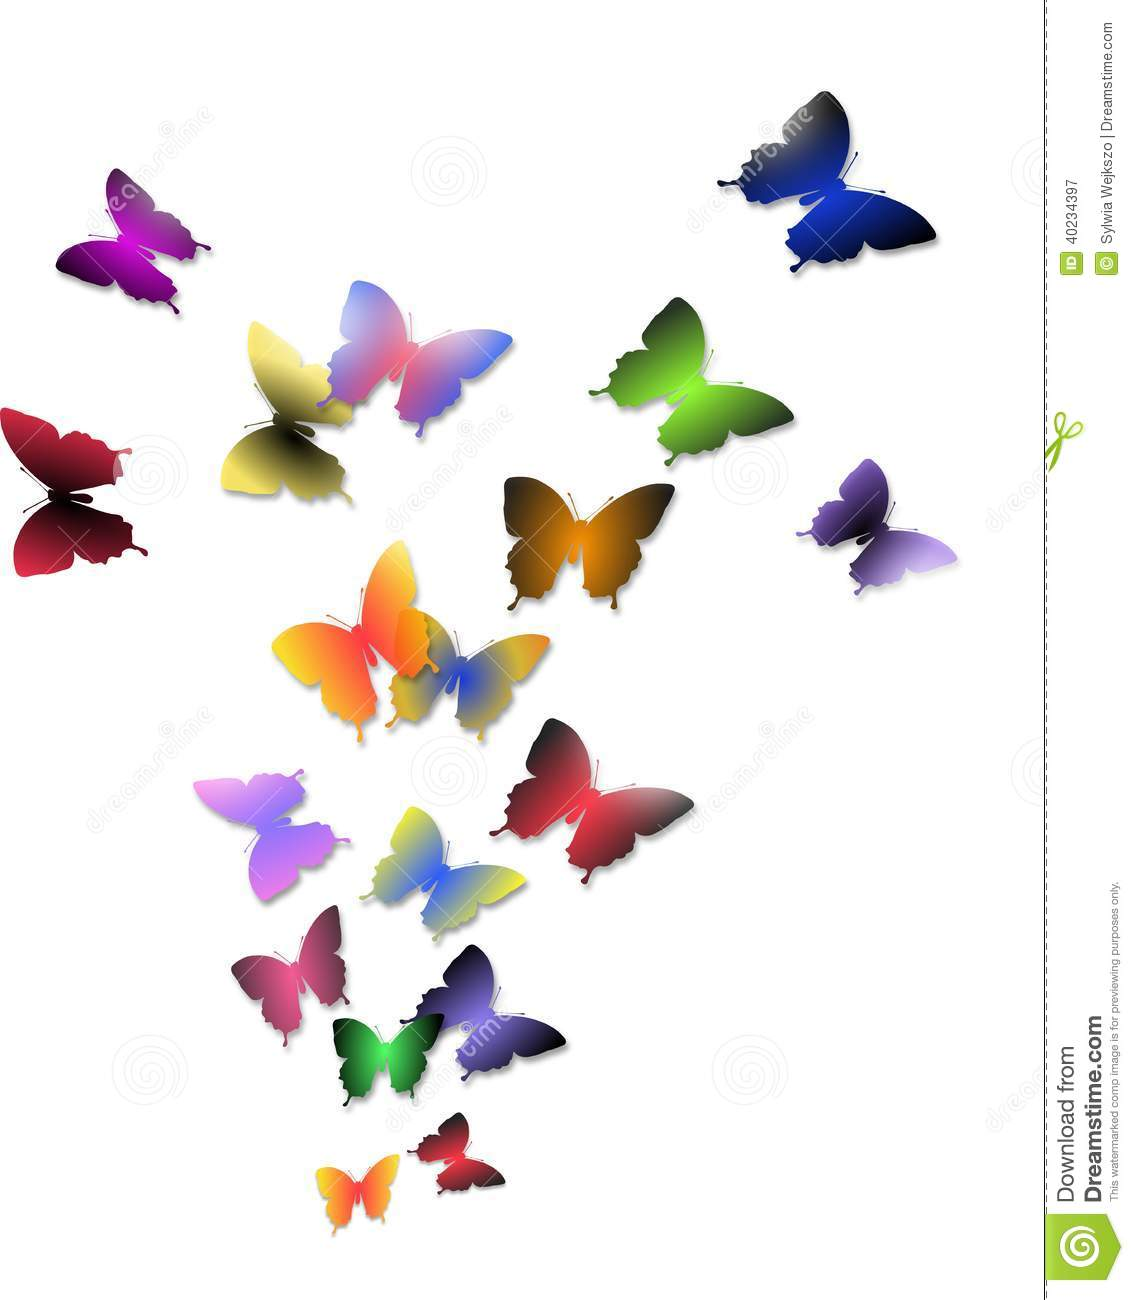 Illustration du vol des papillons color s illustration - Images de papillons gratuites ...